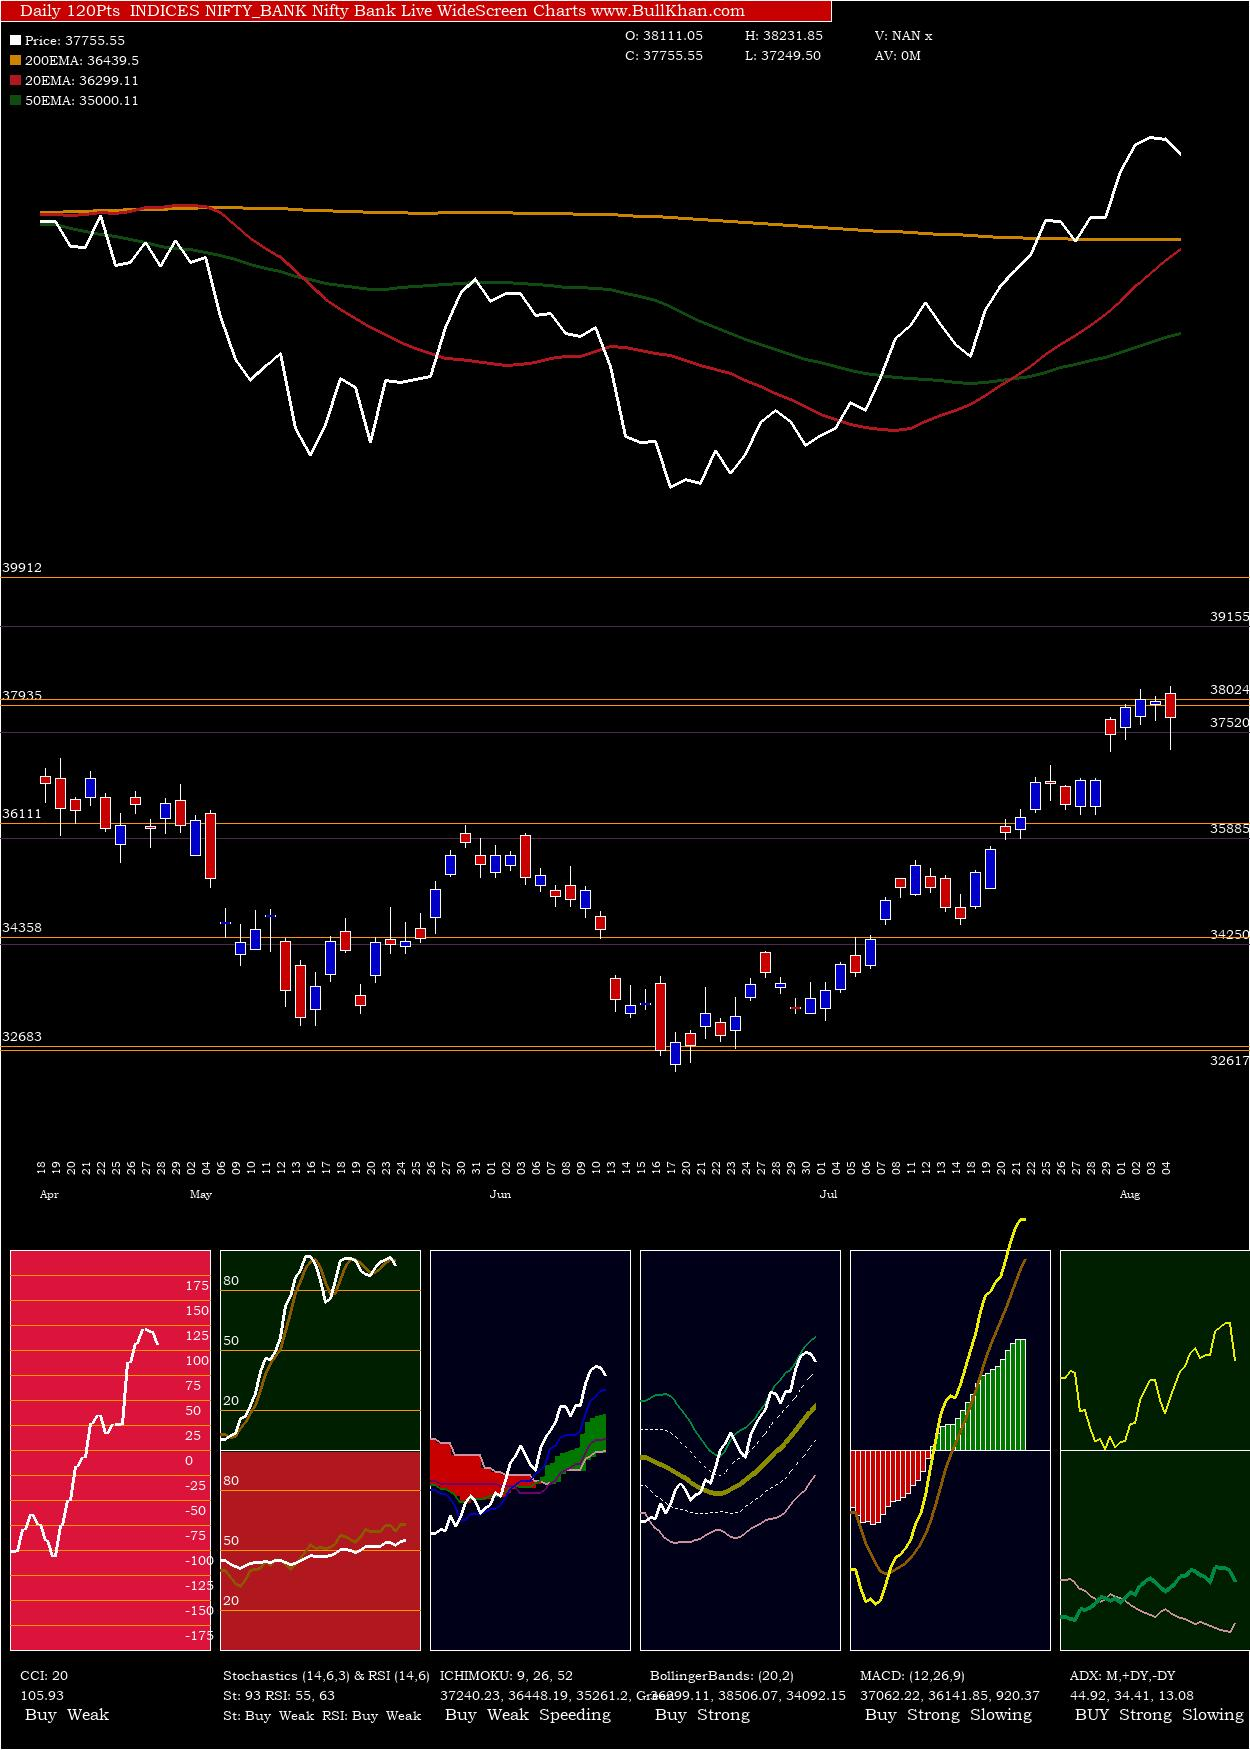 Nifty Bank charts and indicators